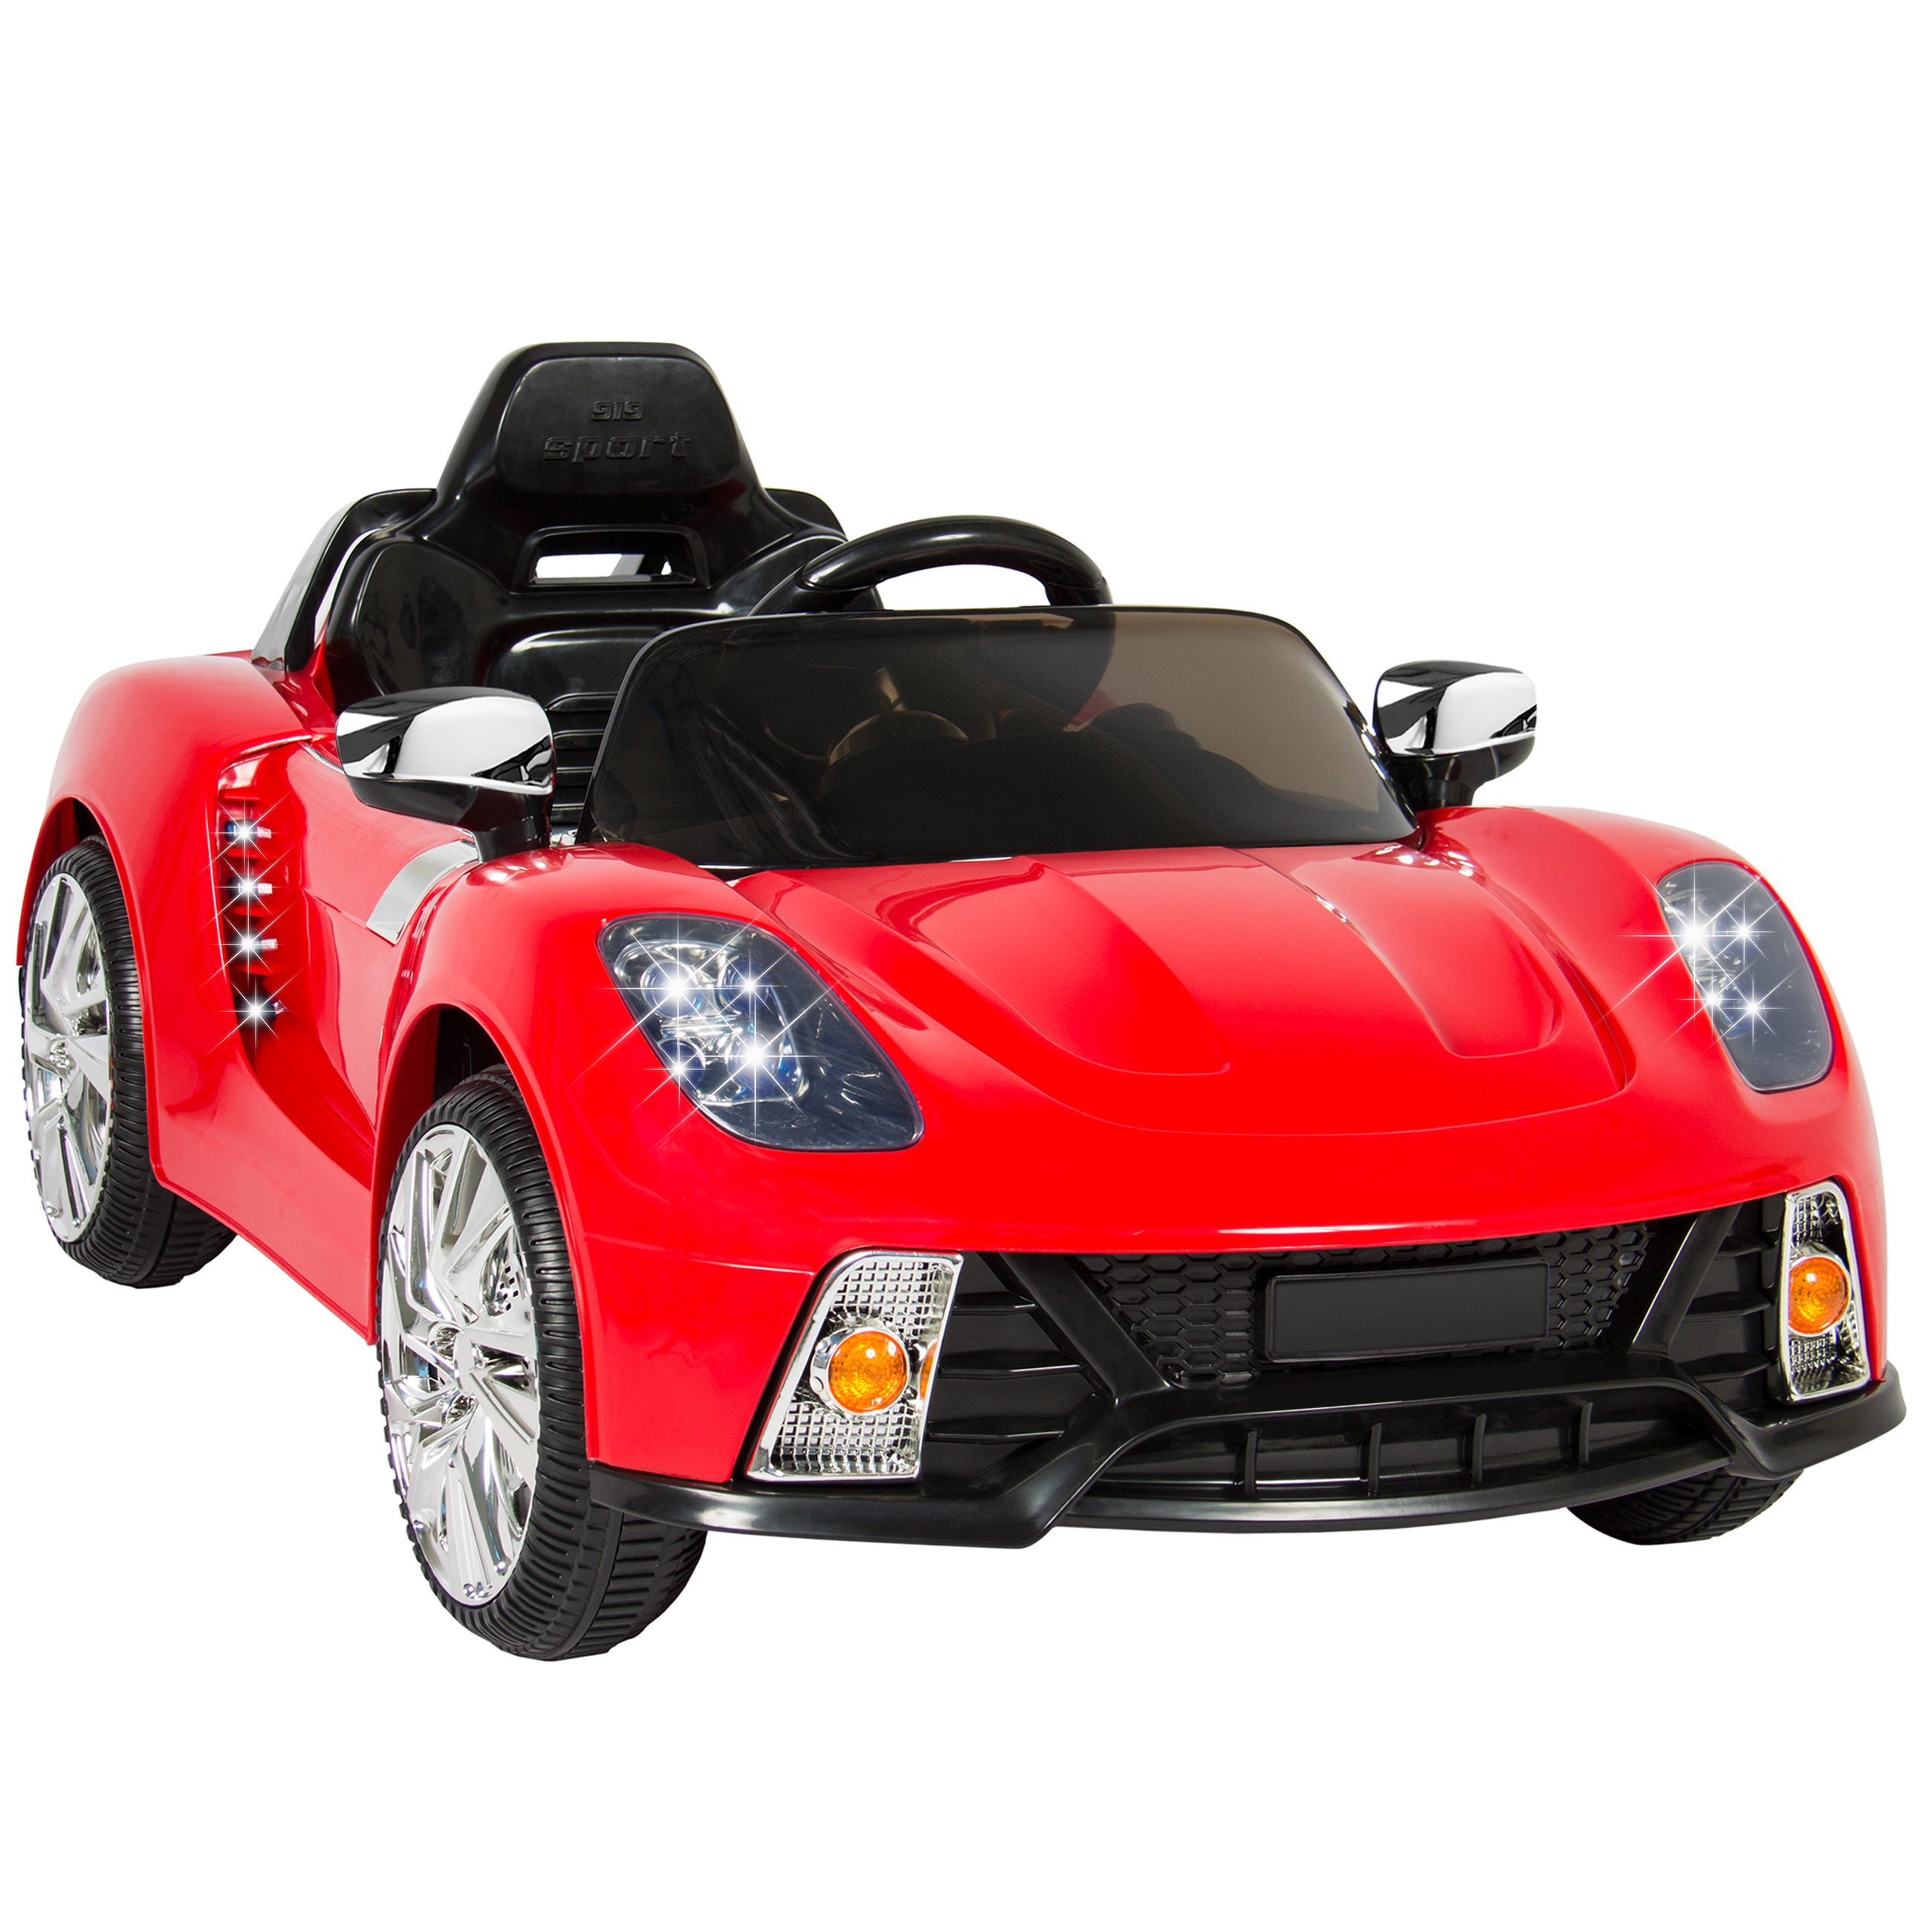 Kids Ride On Electric Cars Lovely Best Choice Products 12v Kids Battery Powered Remote Control